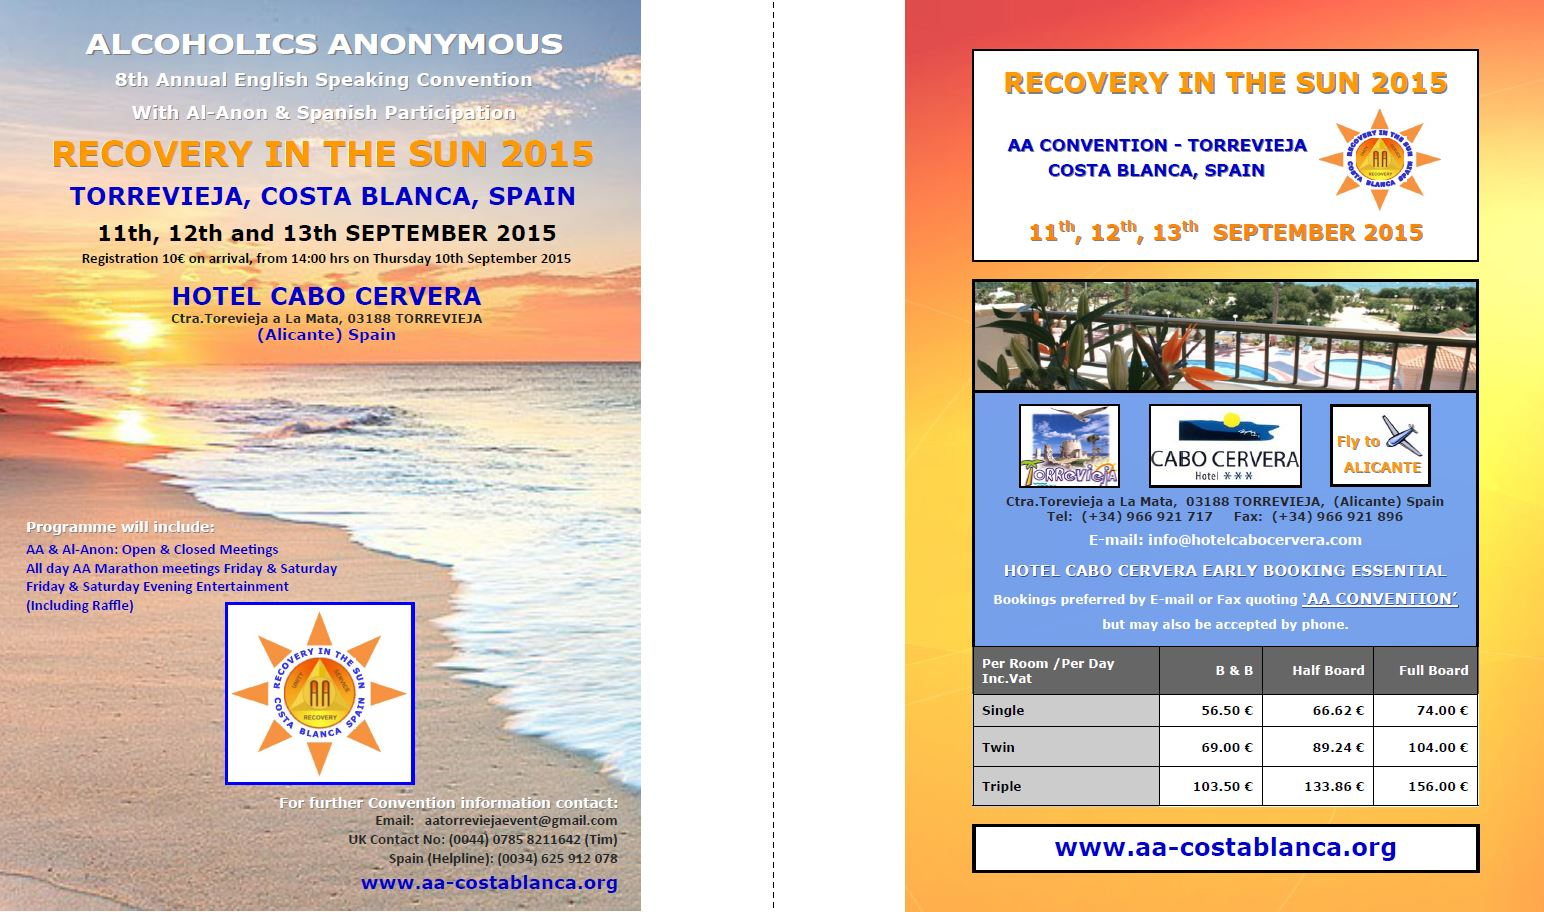 RECOVERY IN THE SUN CONVENTION 2015 Flyer